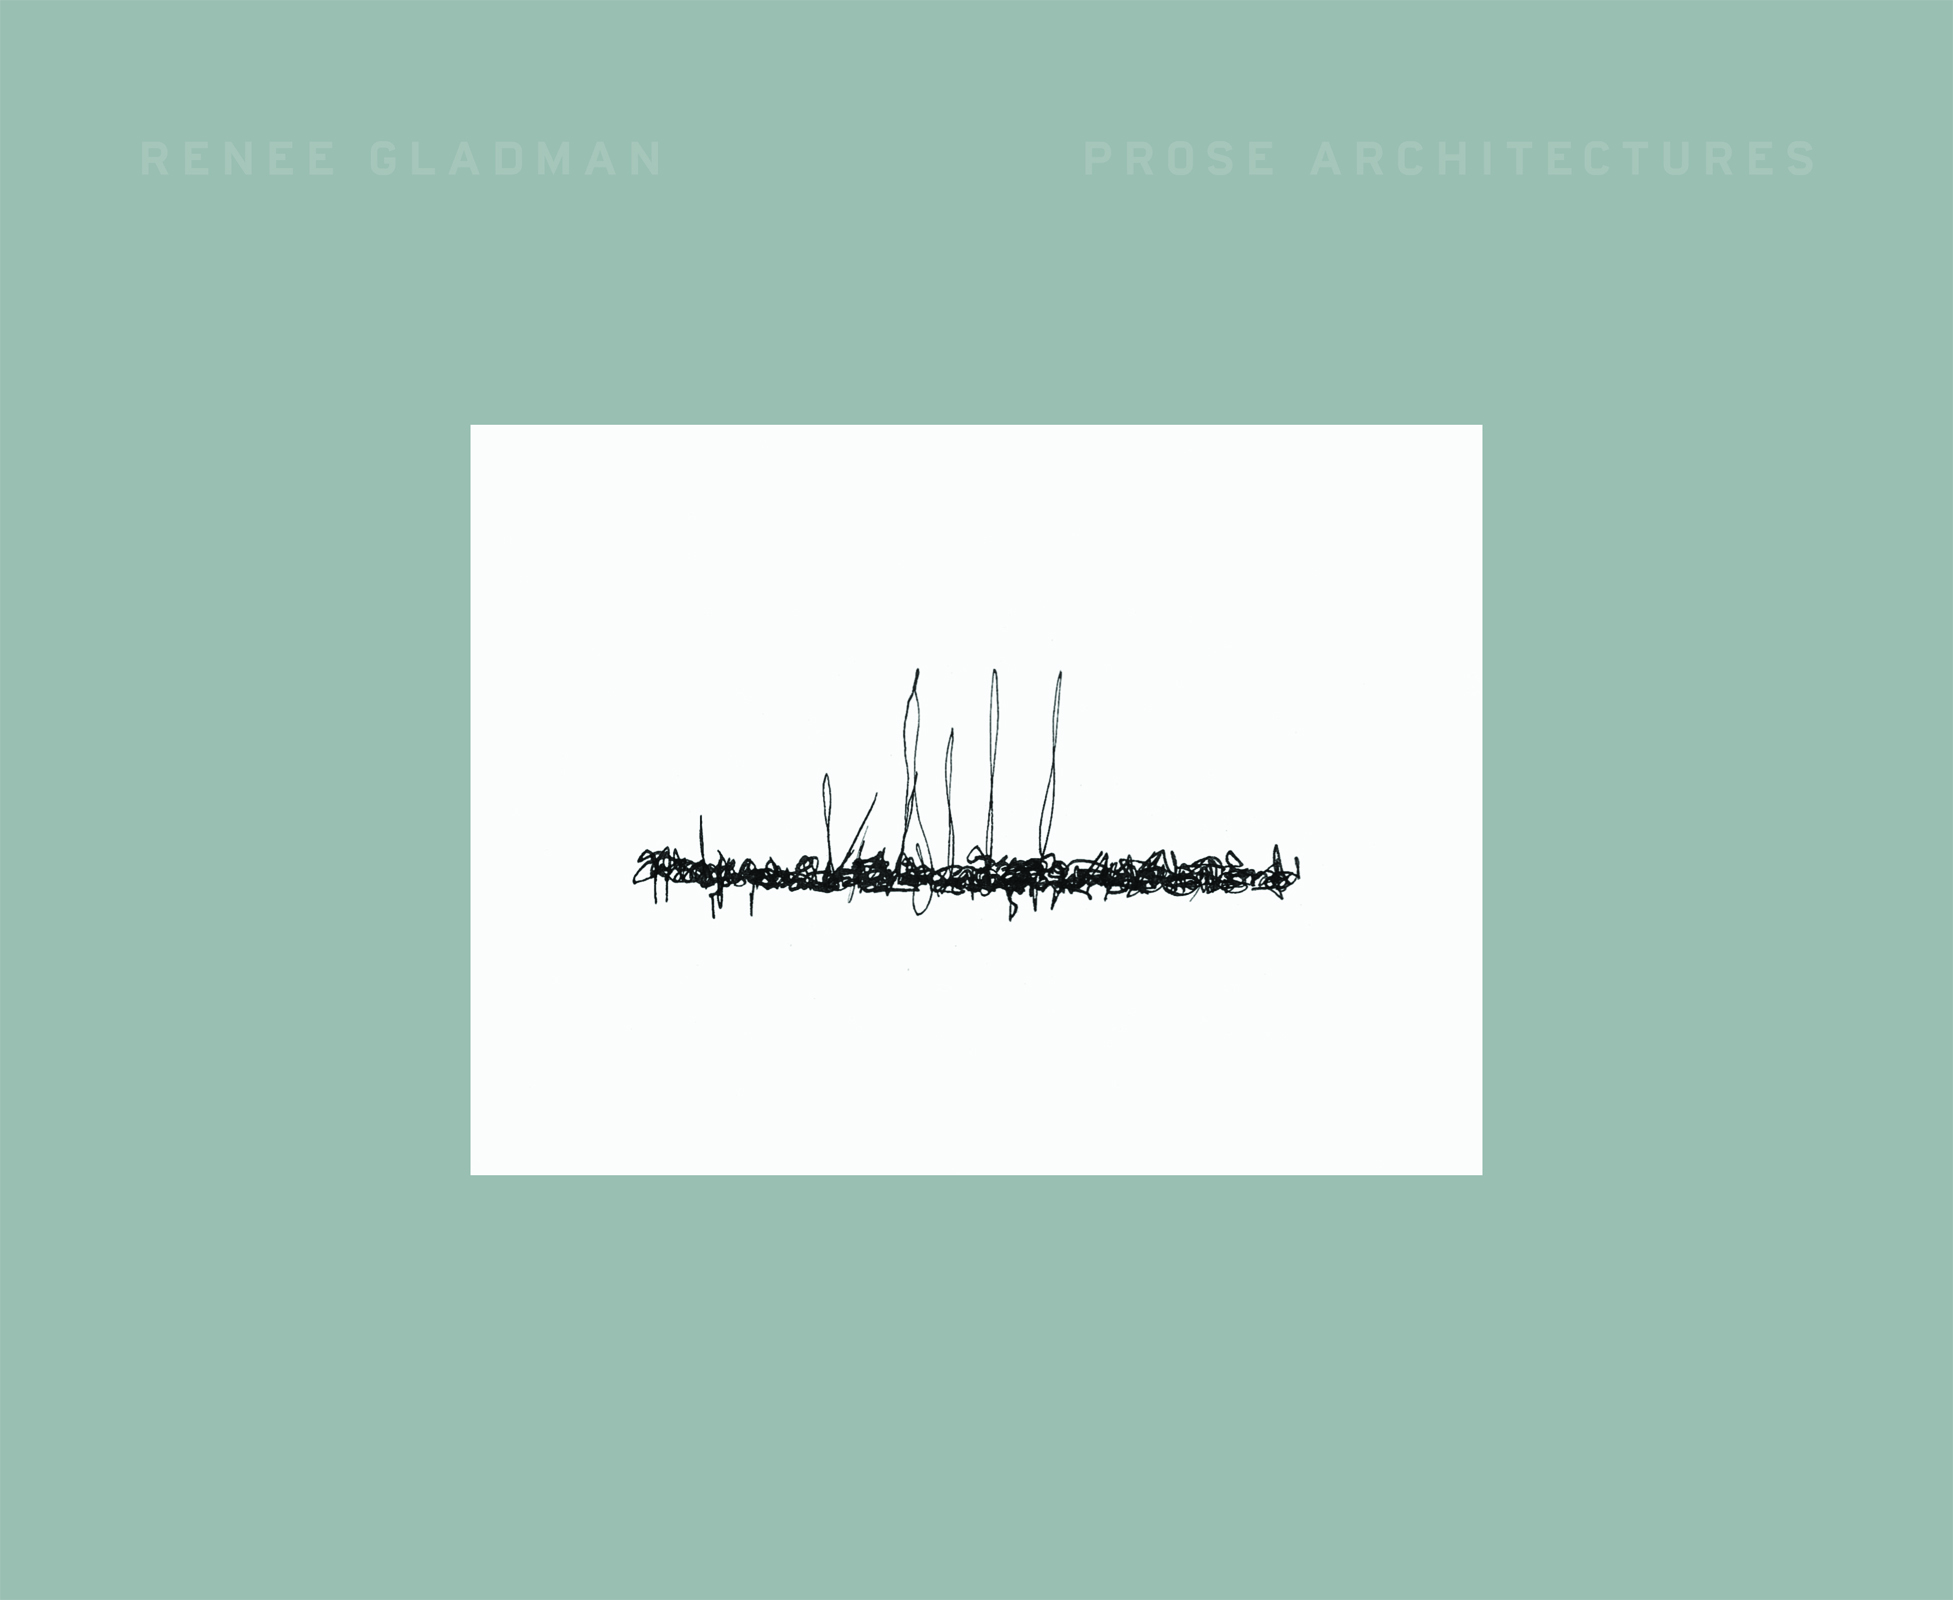 Reviews Chicago Review Ups Circuit Diagram Urdu Renee Gladman Prose Architectures